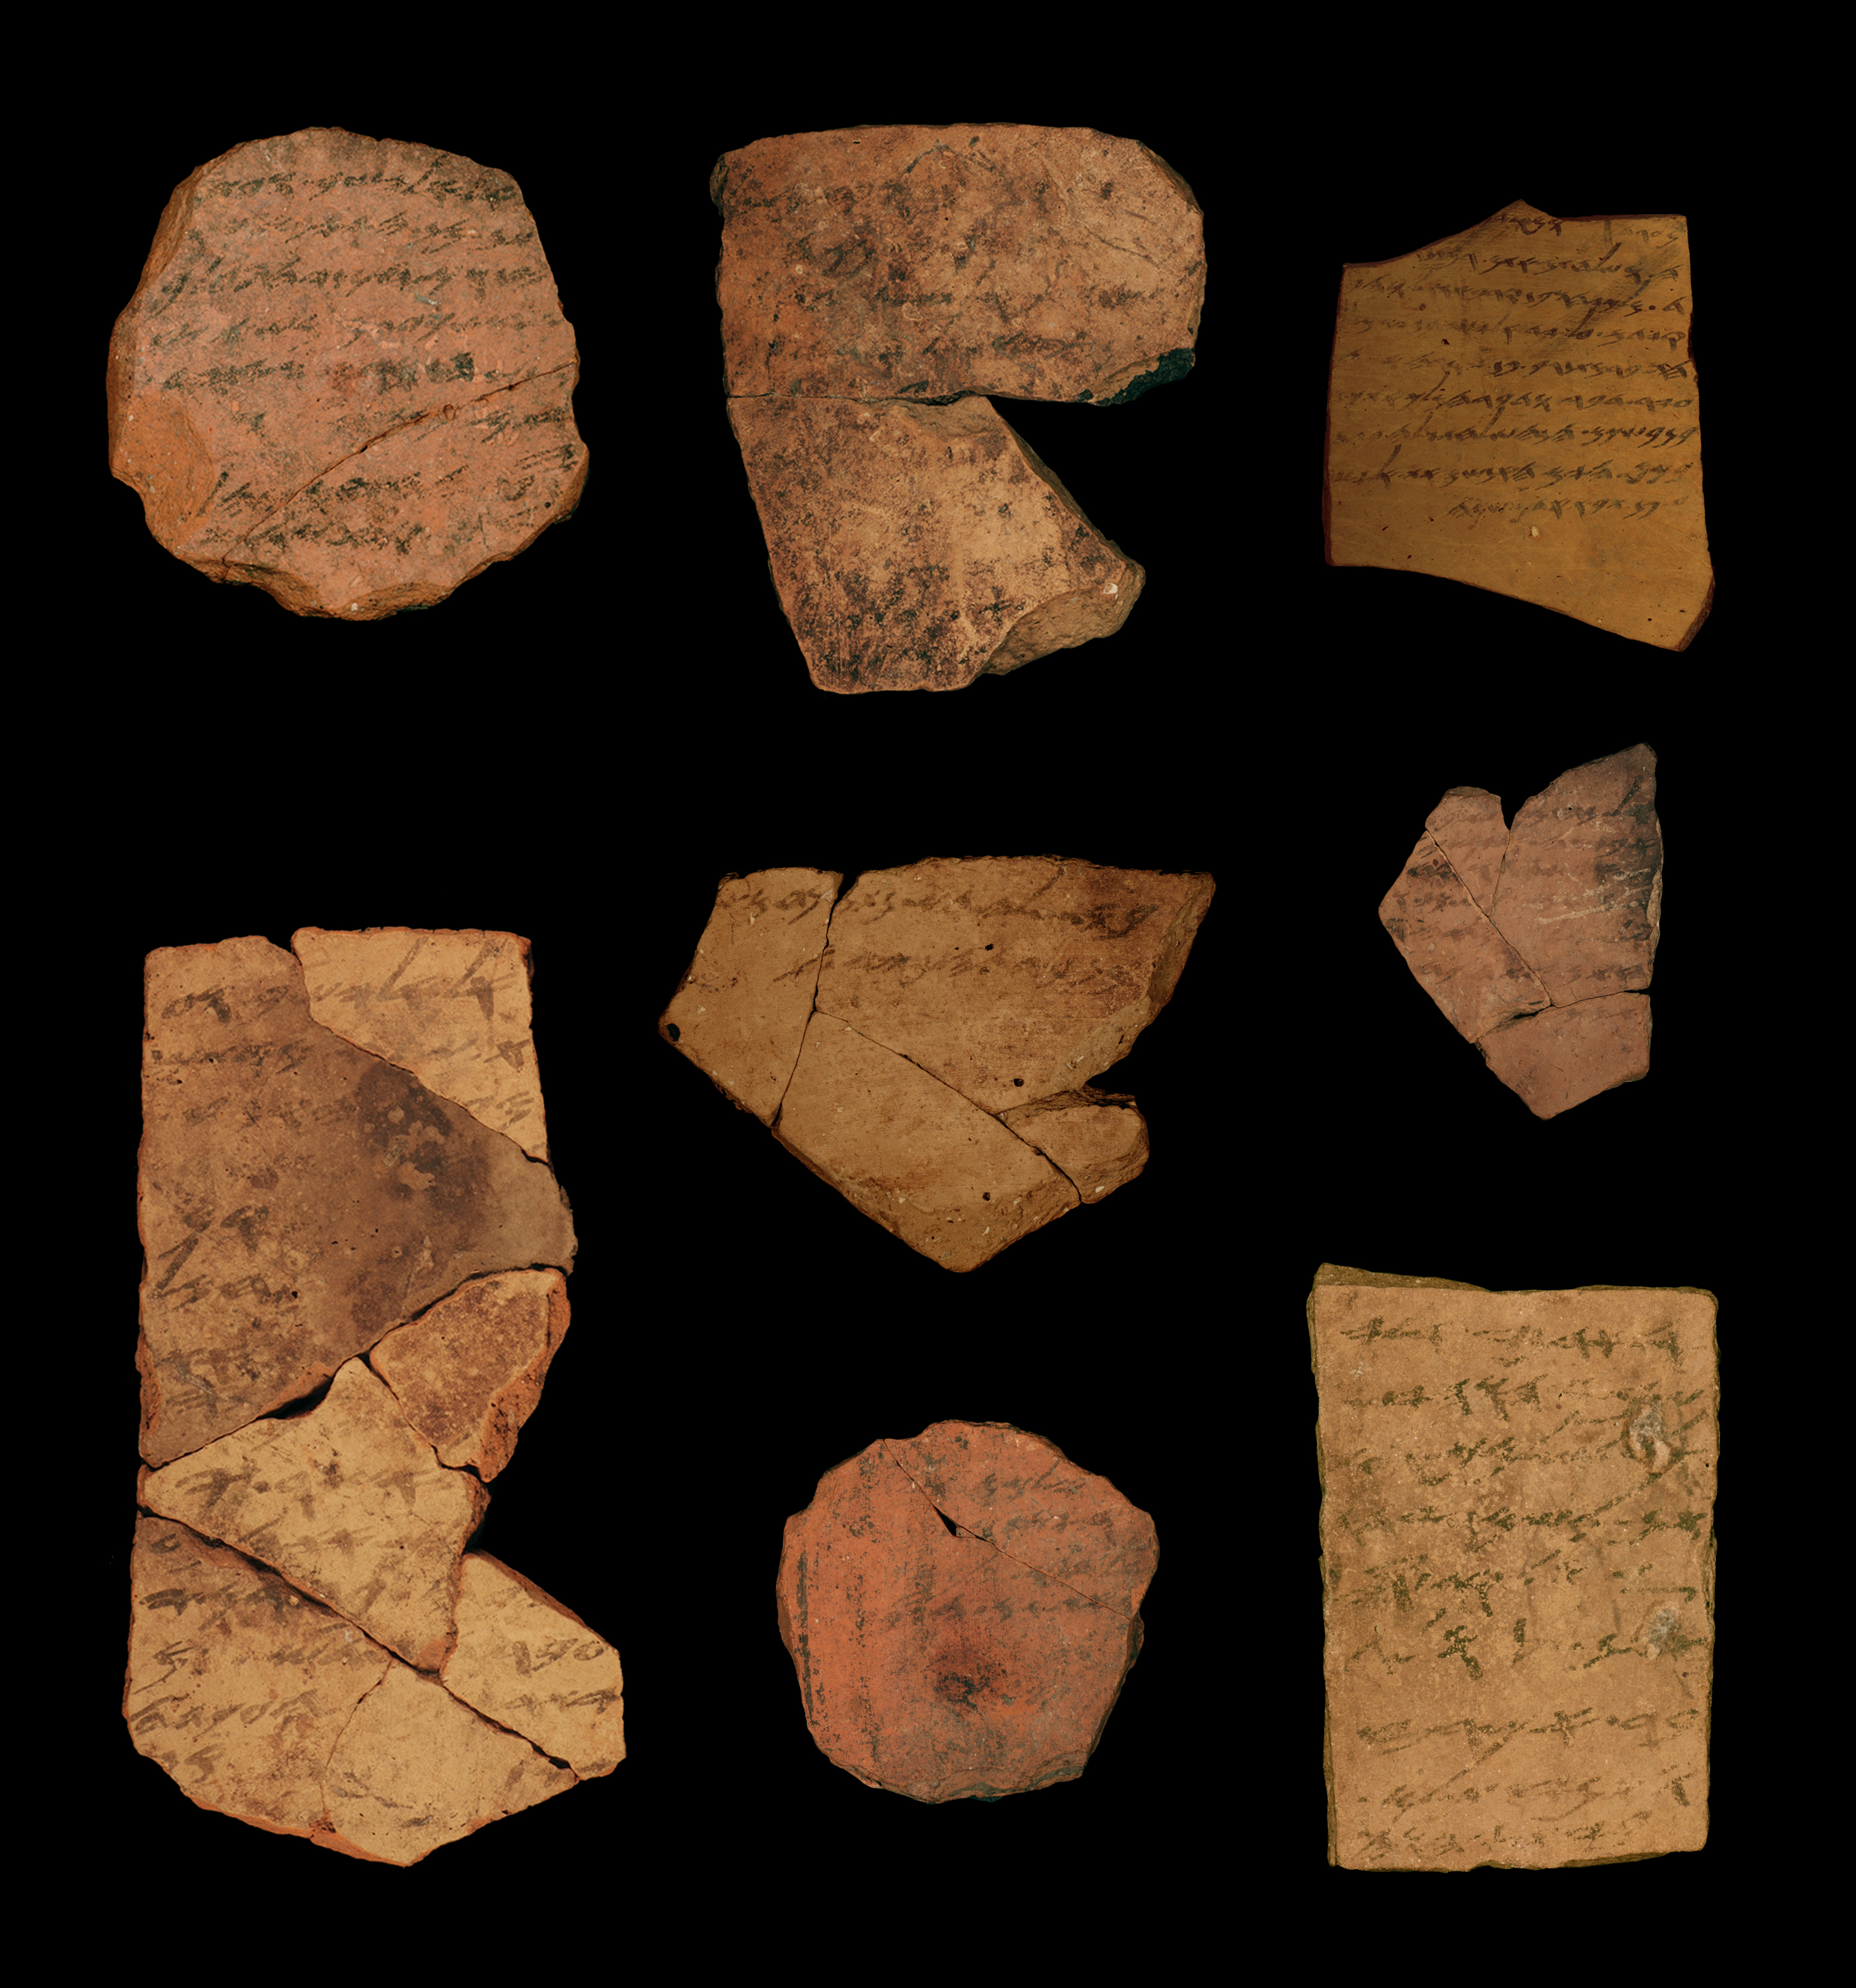 Ostraca (ink inscriptions on clay) from the Iron Age fortress of Arad, southern  Judah. These  documents are dated to the latest phase of the First Temple Period  in  Judah, ca. 600 BCE. This  indicates a high literacy level within the Judahite administration and provides a possible stage-setting for compilation of biblical texts.